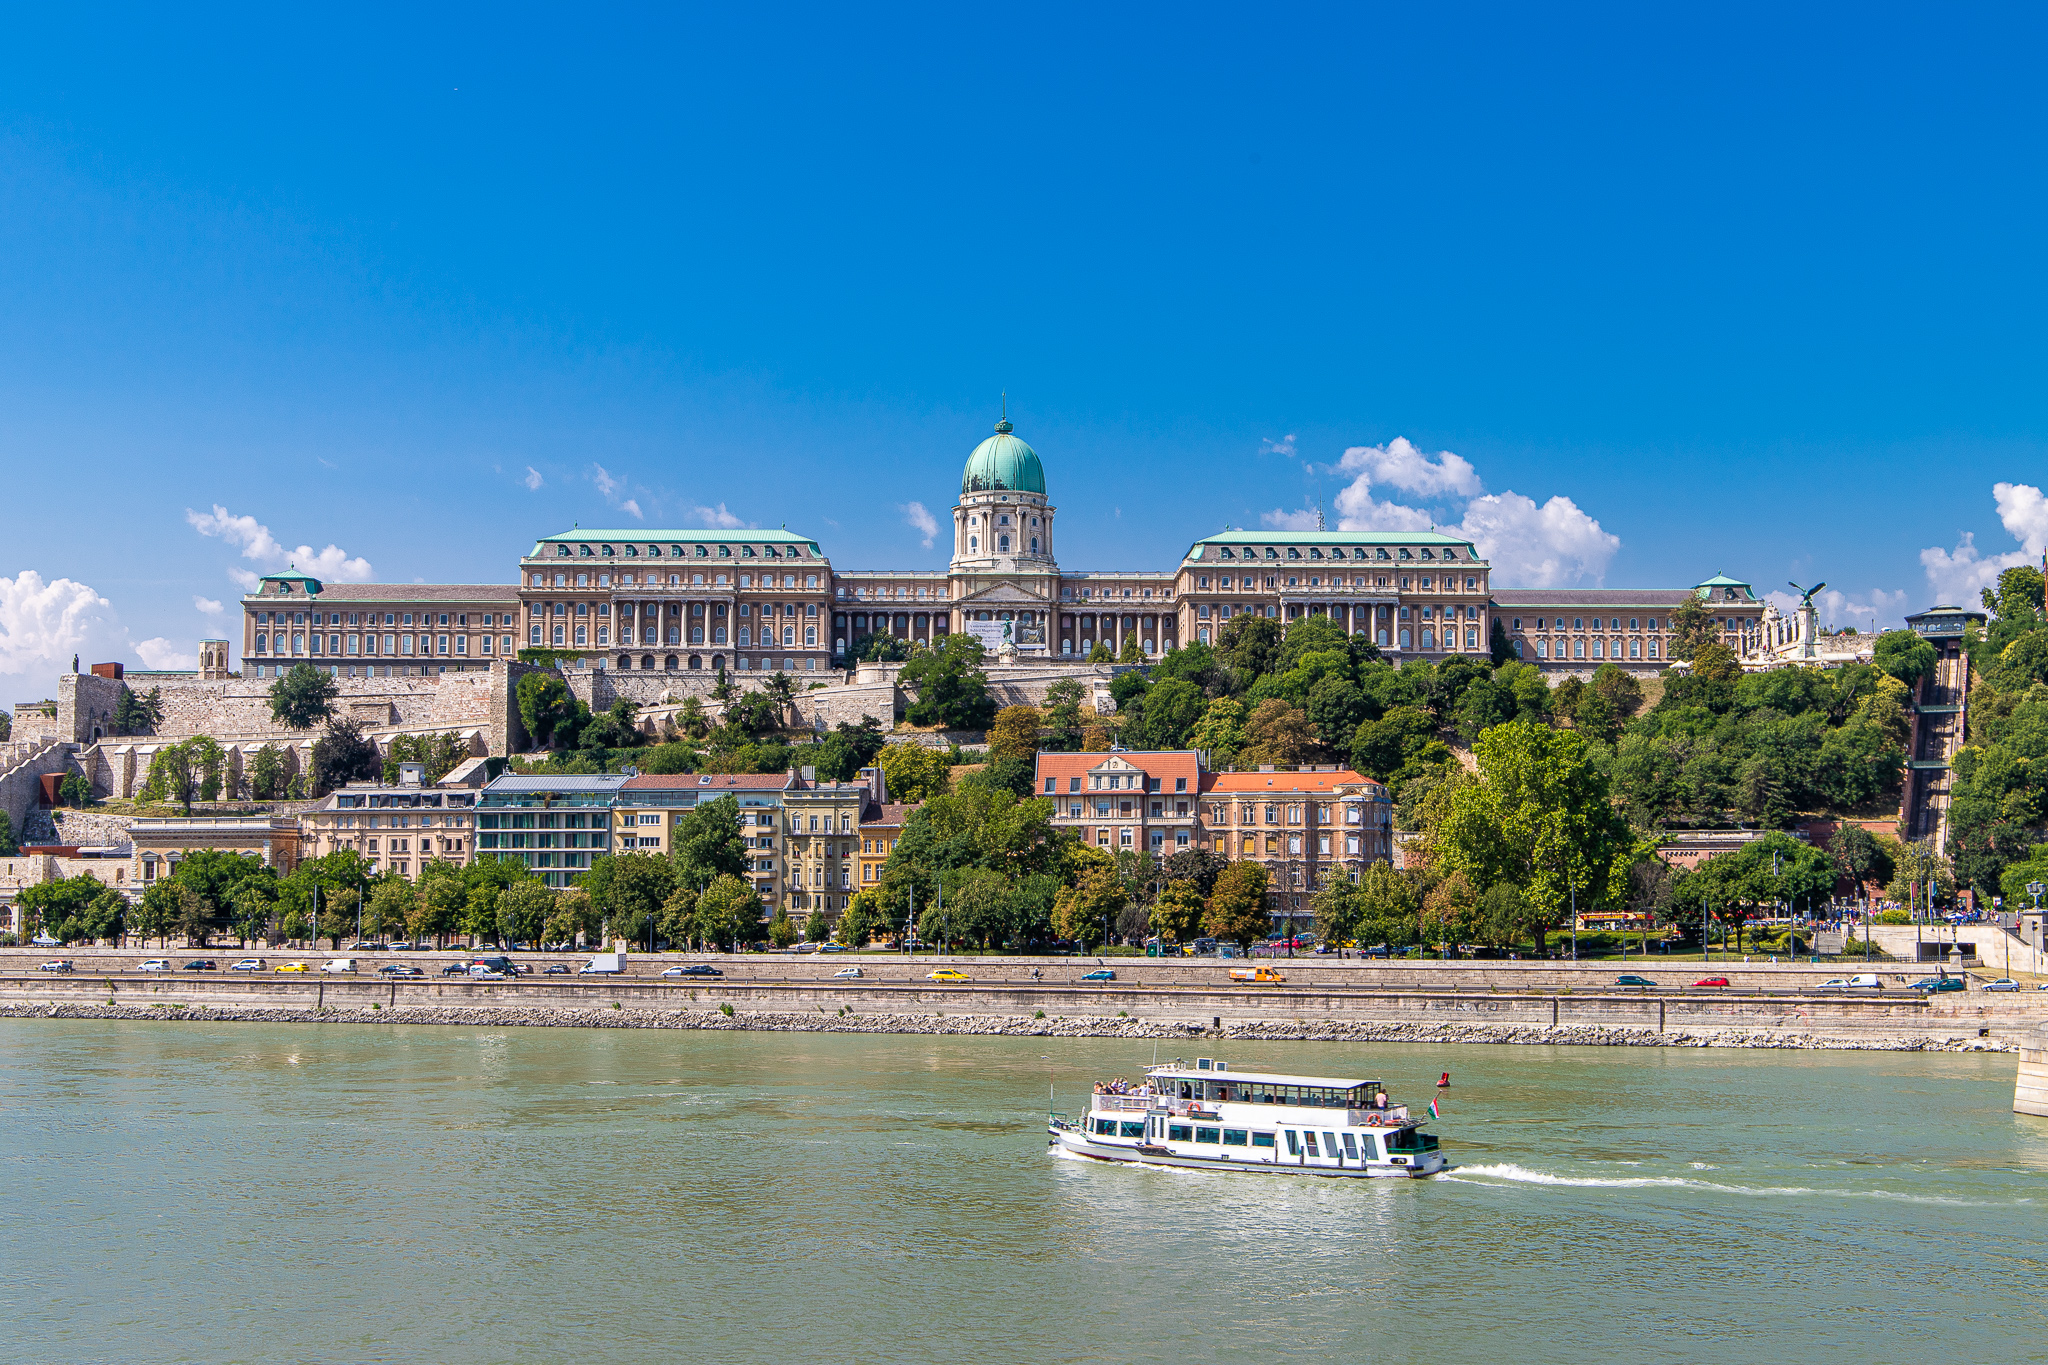 Buda Castle with the Funicular to the right